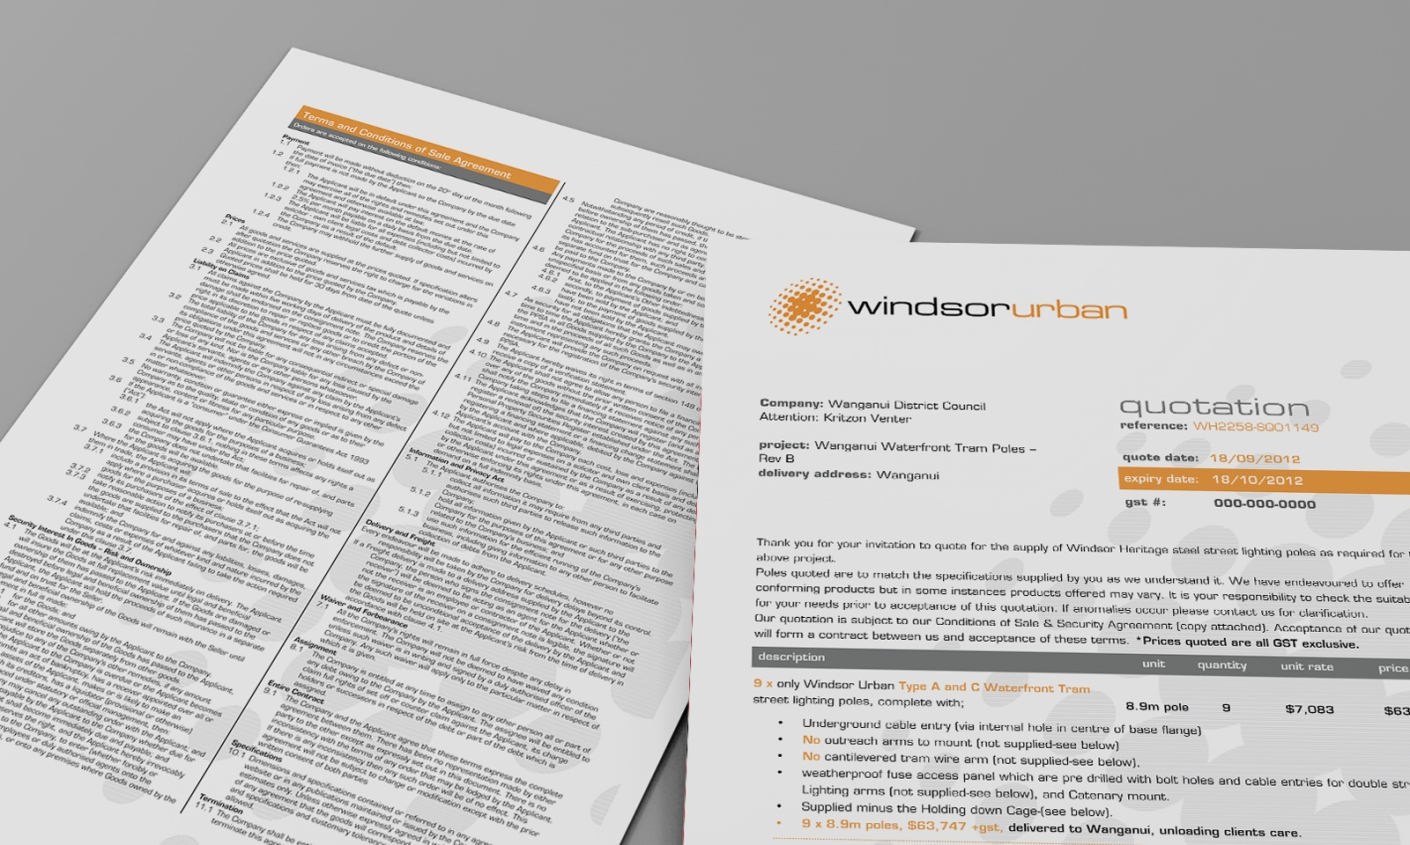 WindsorUrban custom Microsoft Word quote template document.